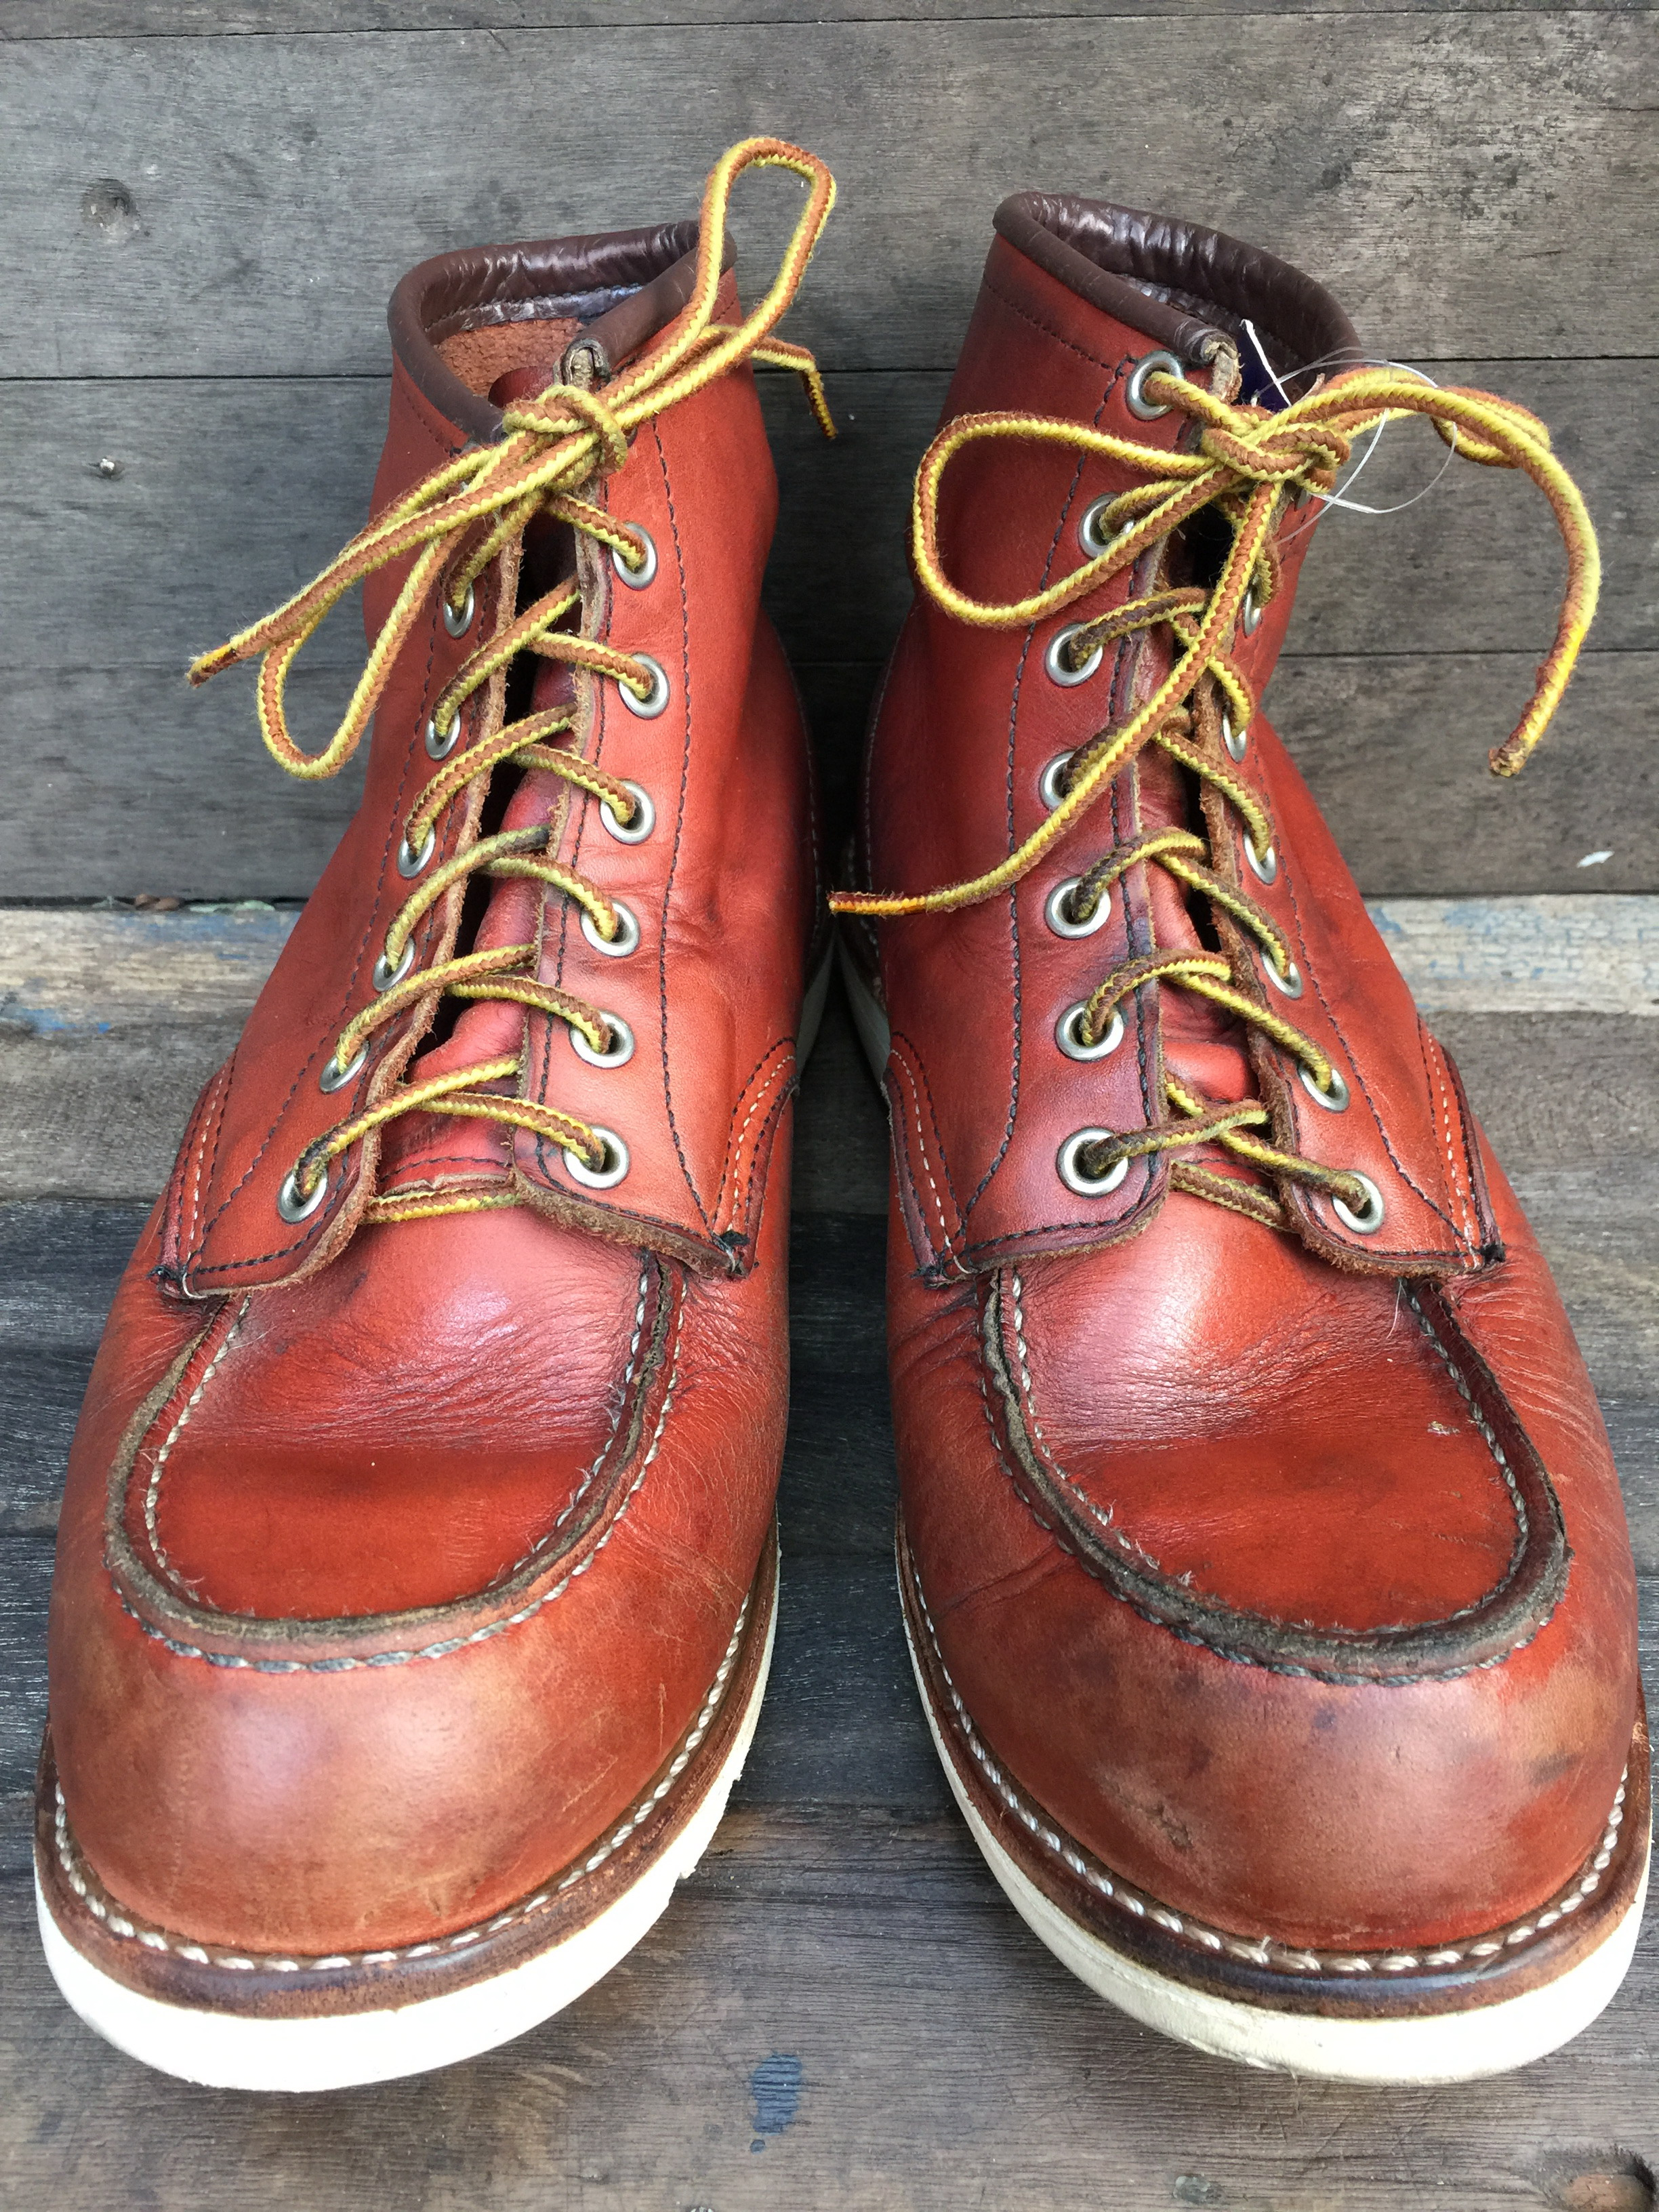 Red wing 8131 size 9E